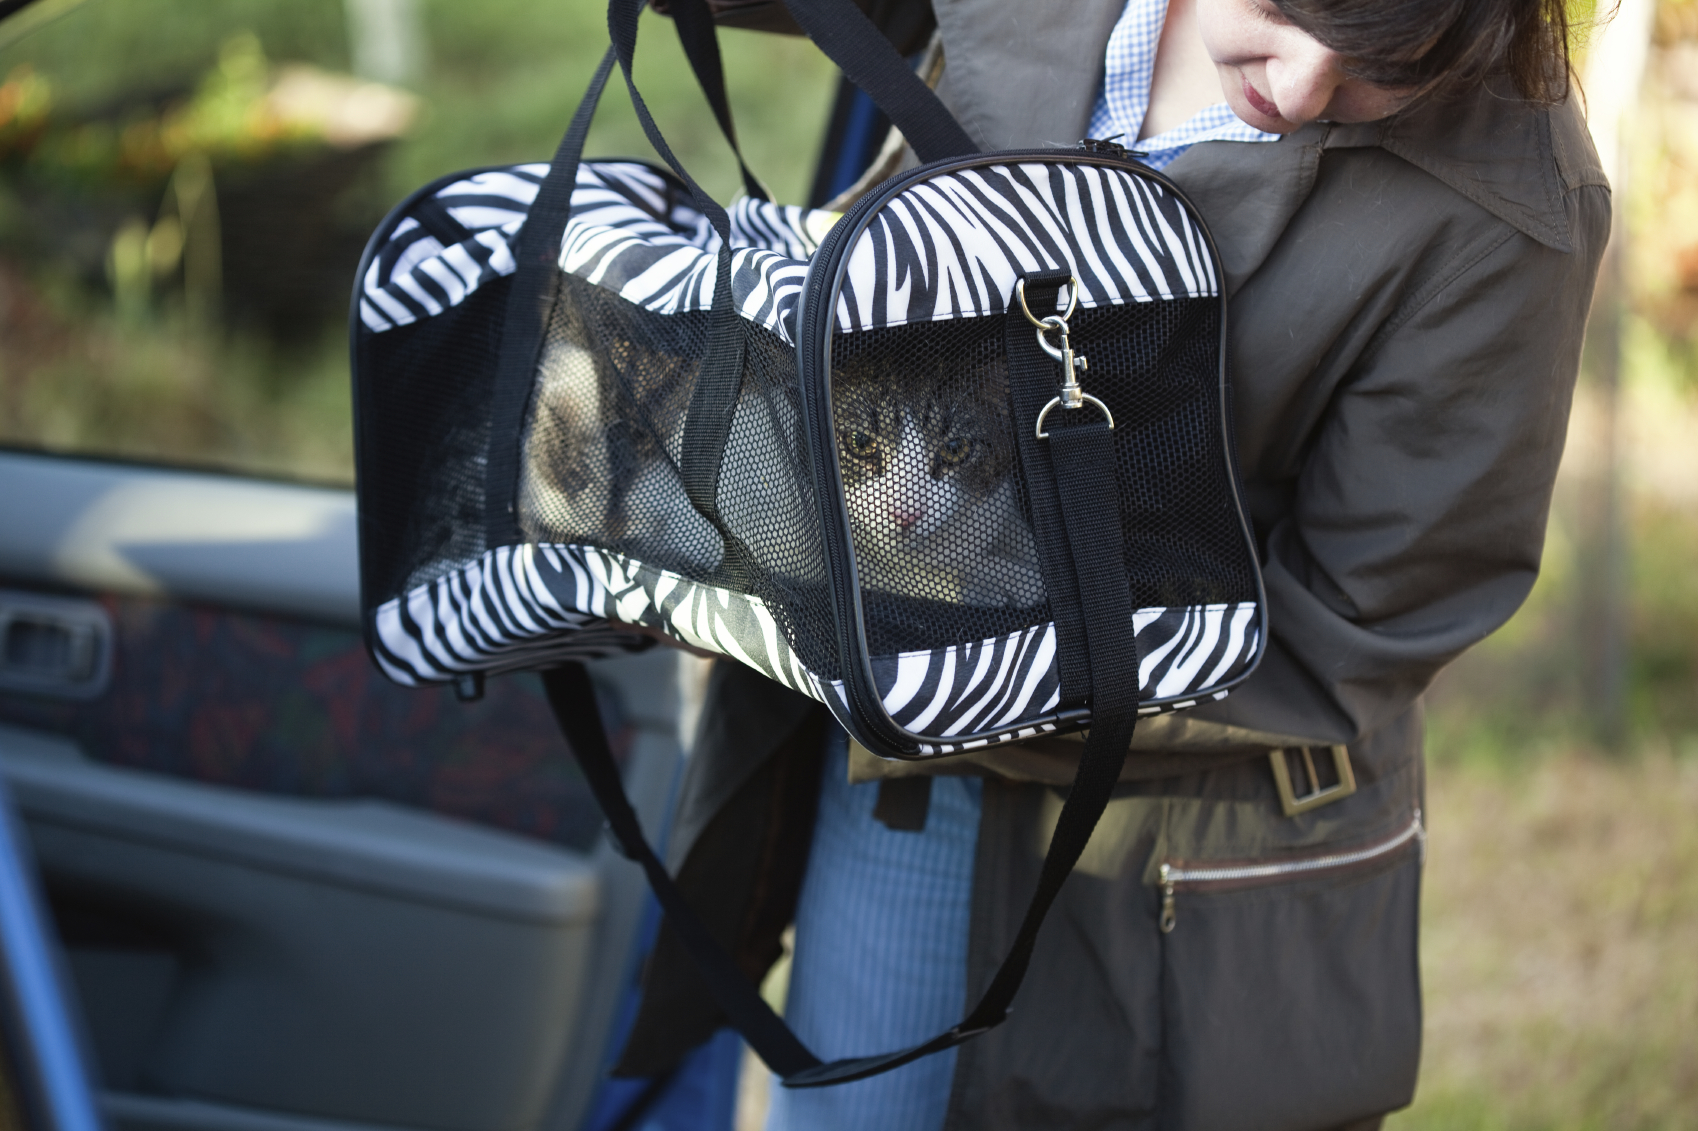 Cat in zebra carrier